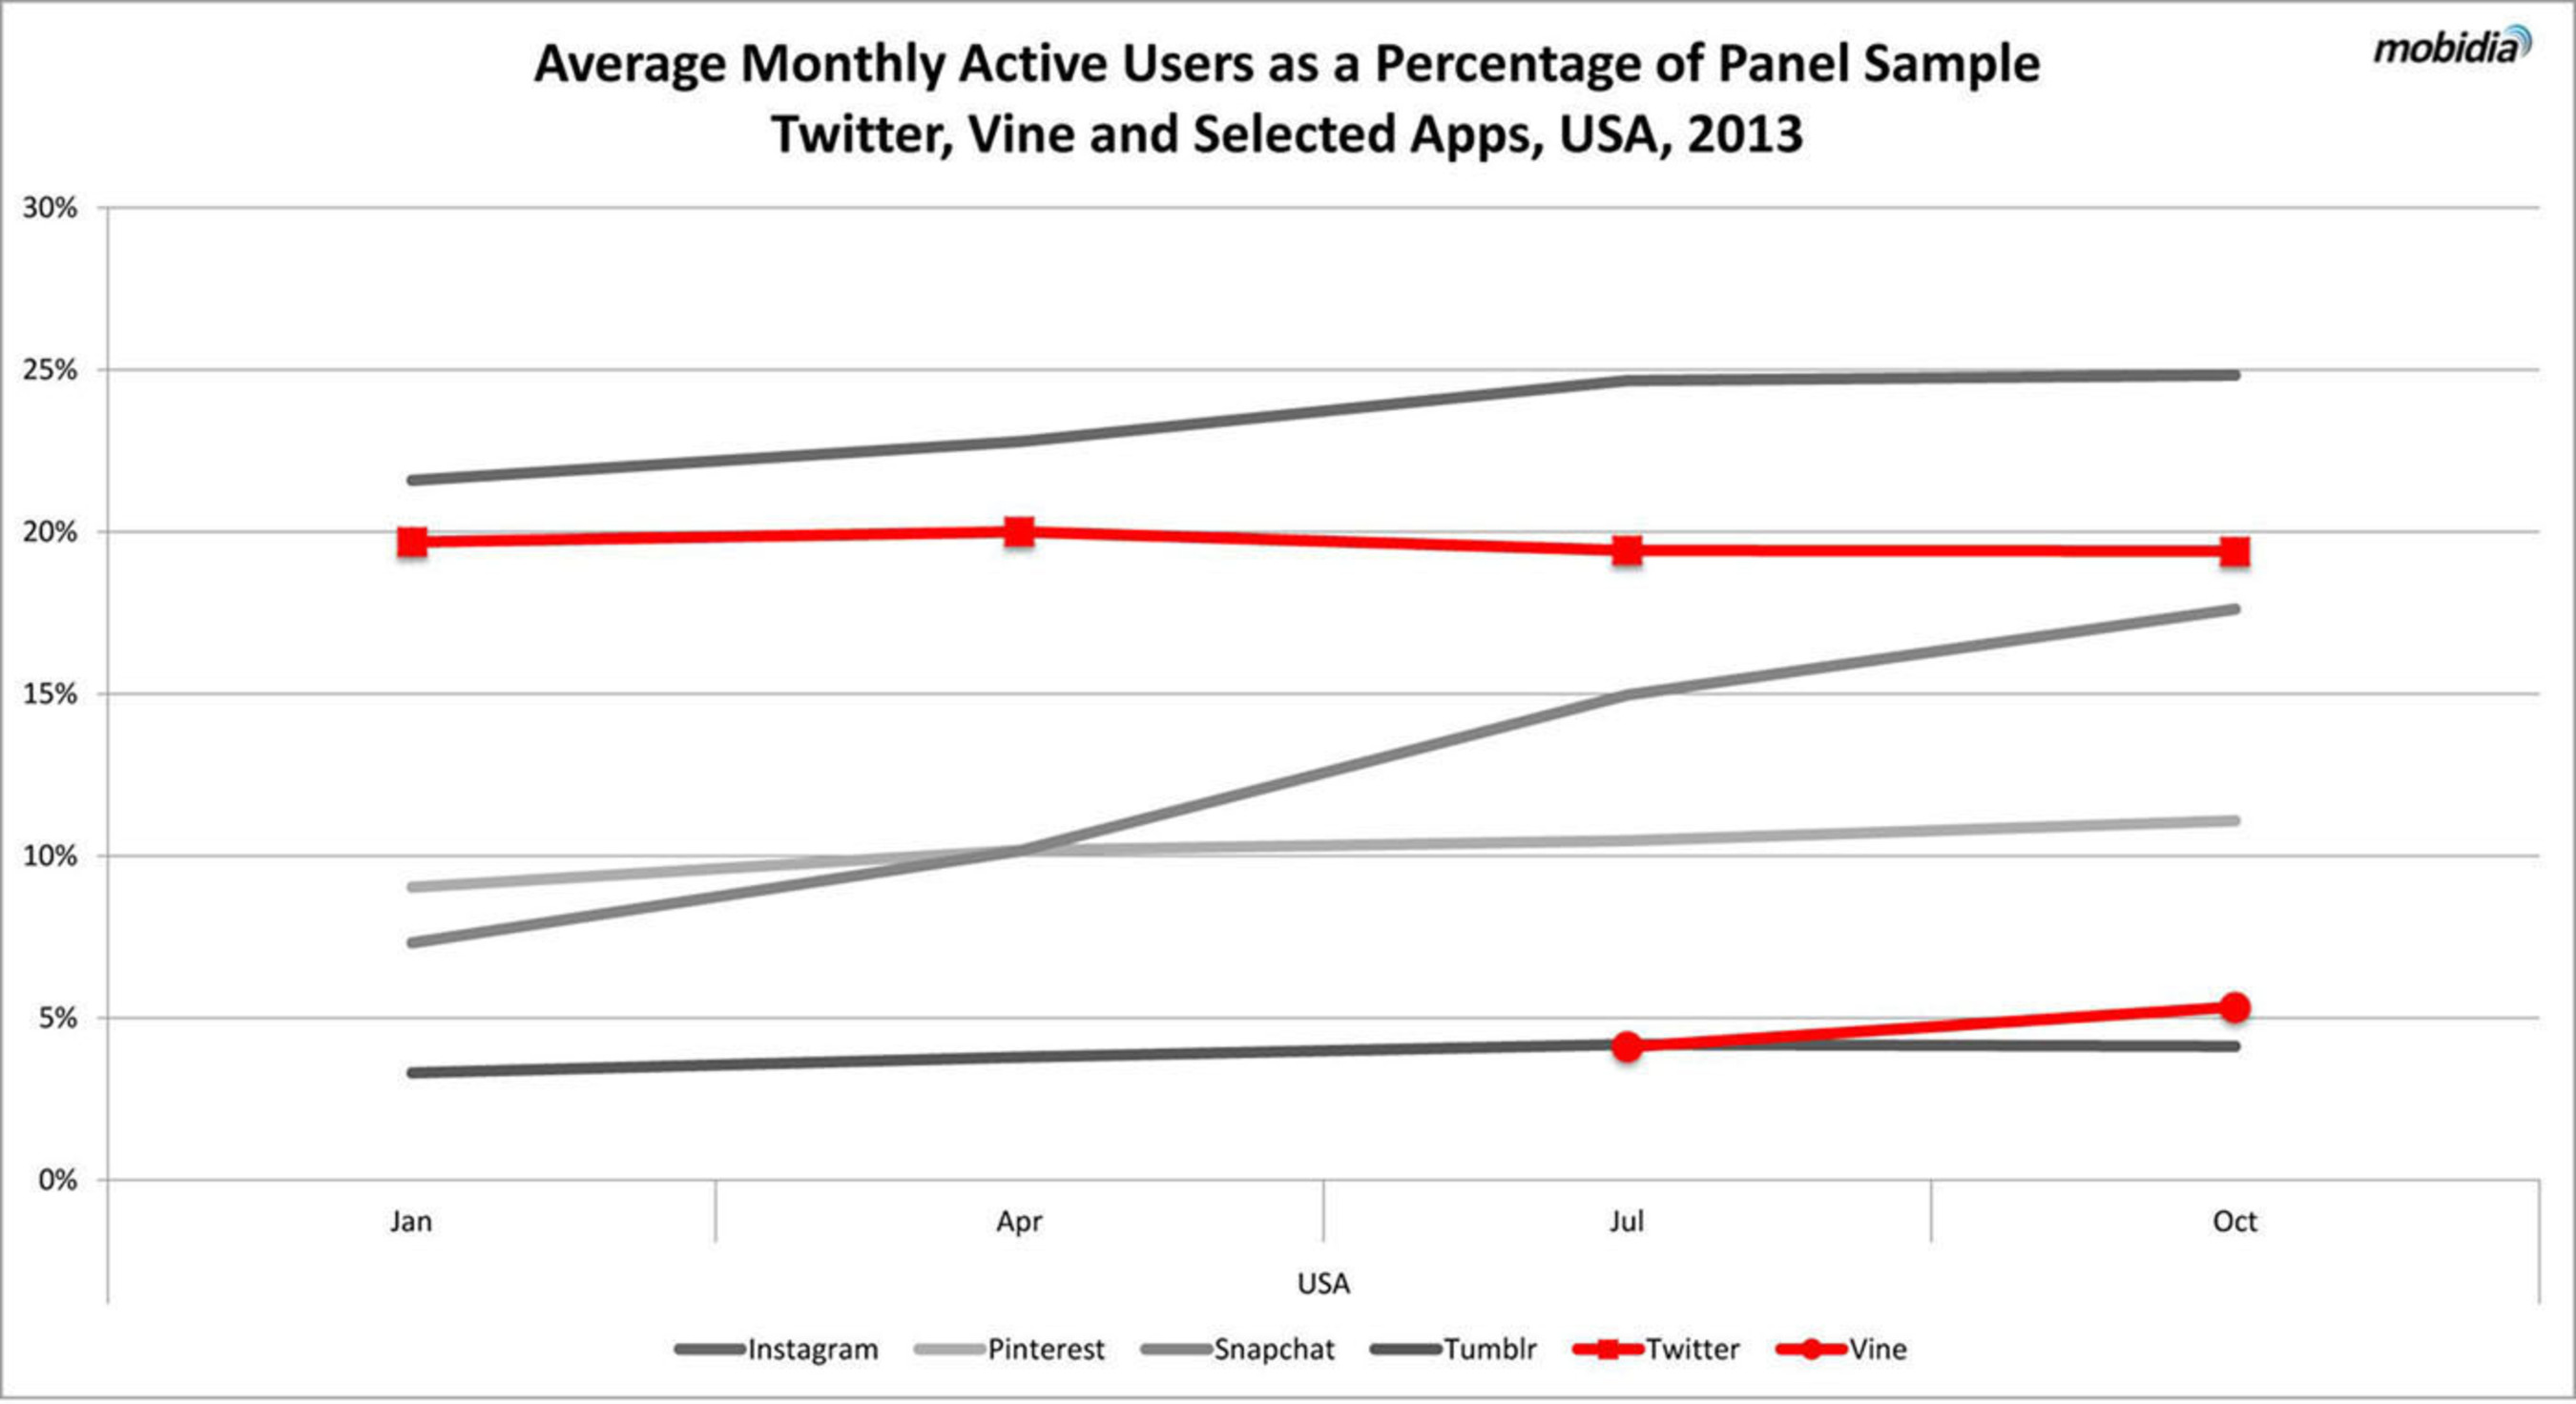 """""""Average Monthly Active Users as a Percentage of Panel Sample Twitter, Vine and Selected Apps, USA, 2013"""".  (PRNewsFoto/Mobidia Technology, Inc.)"""